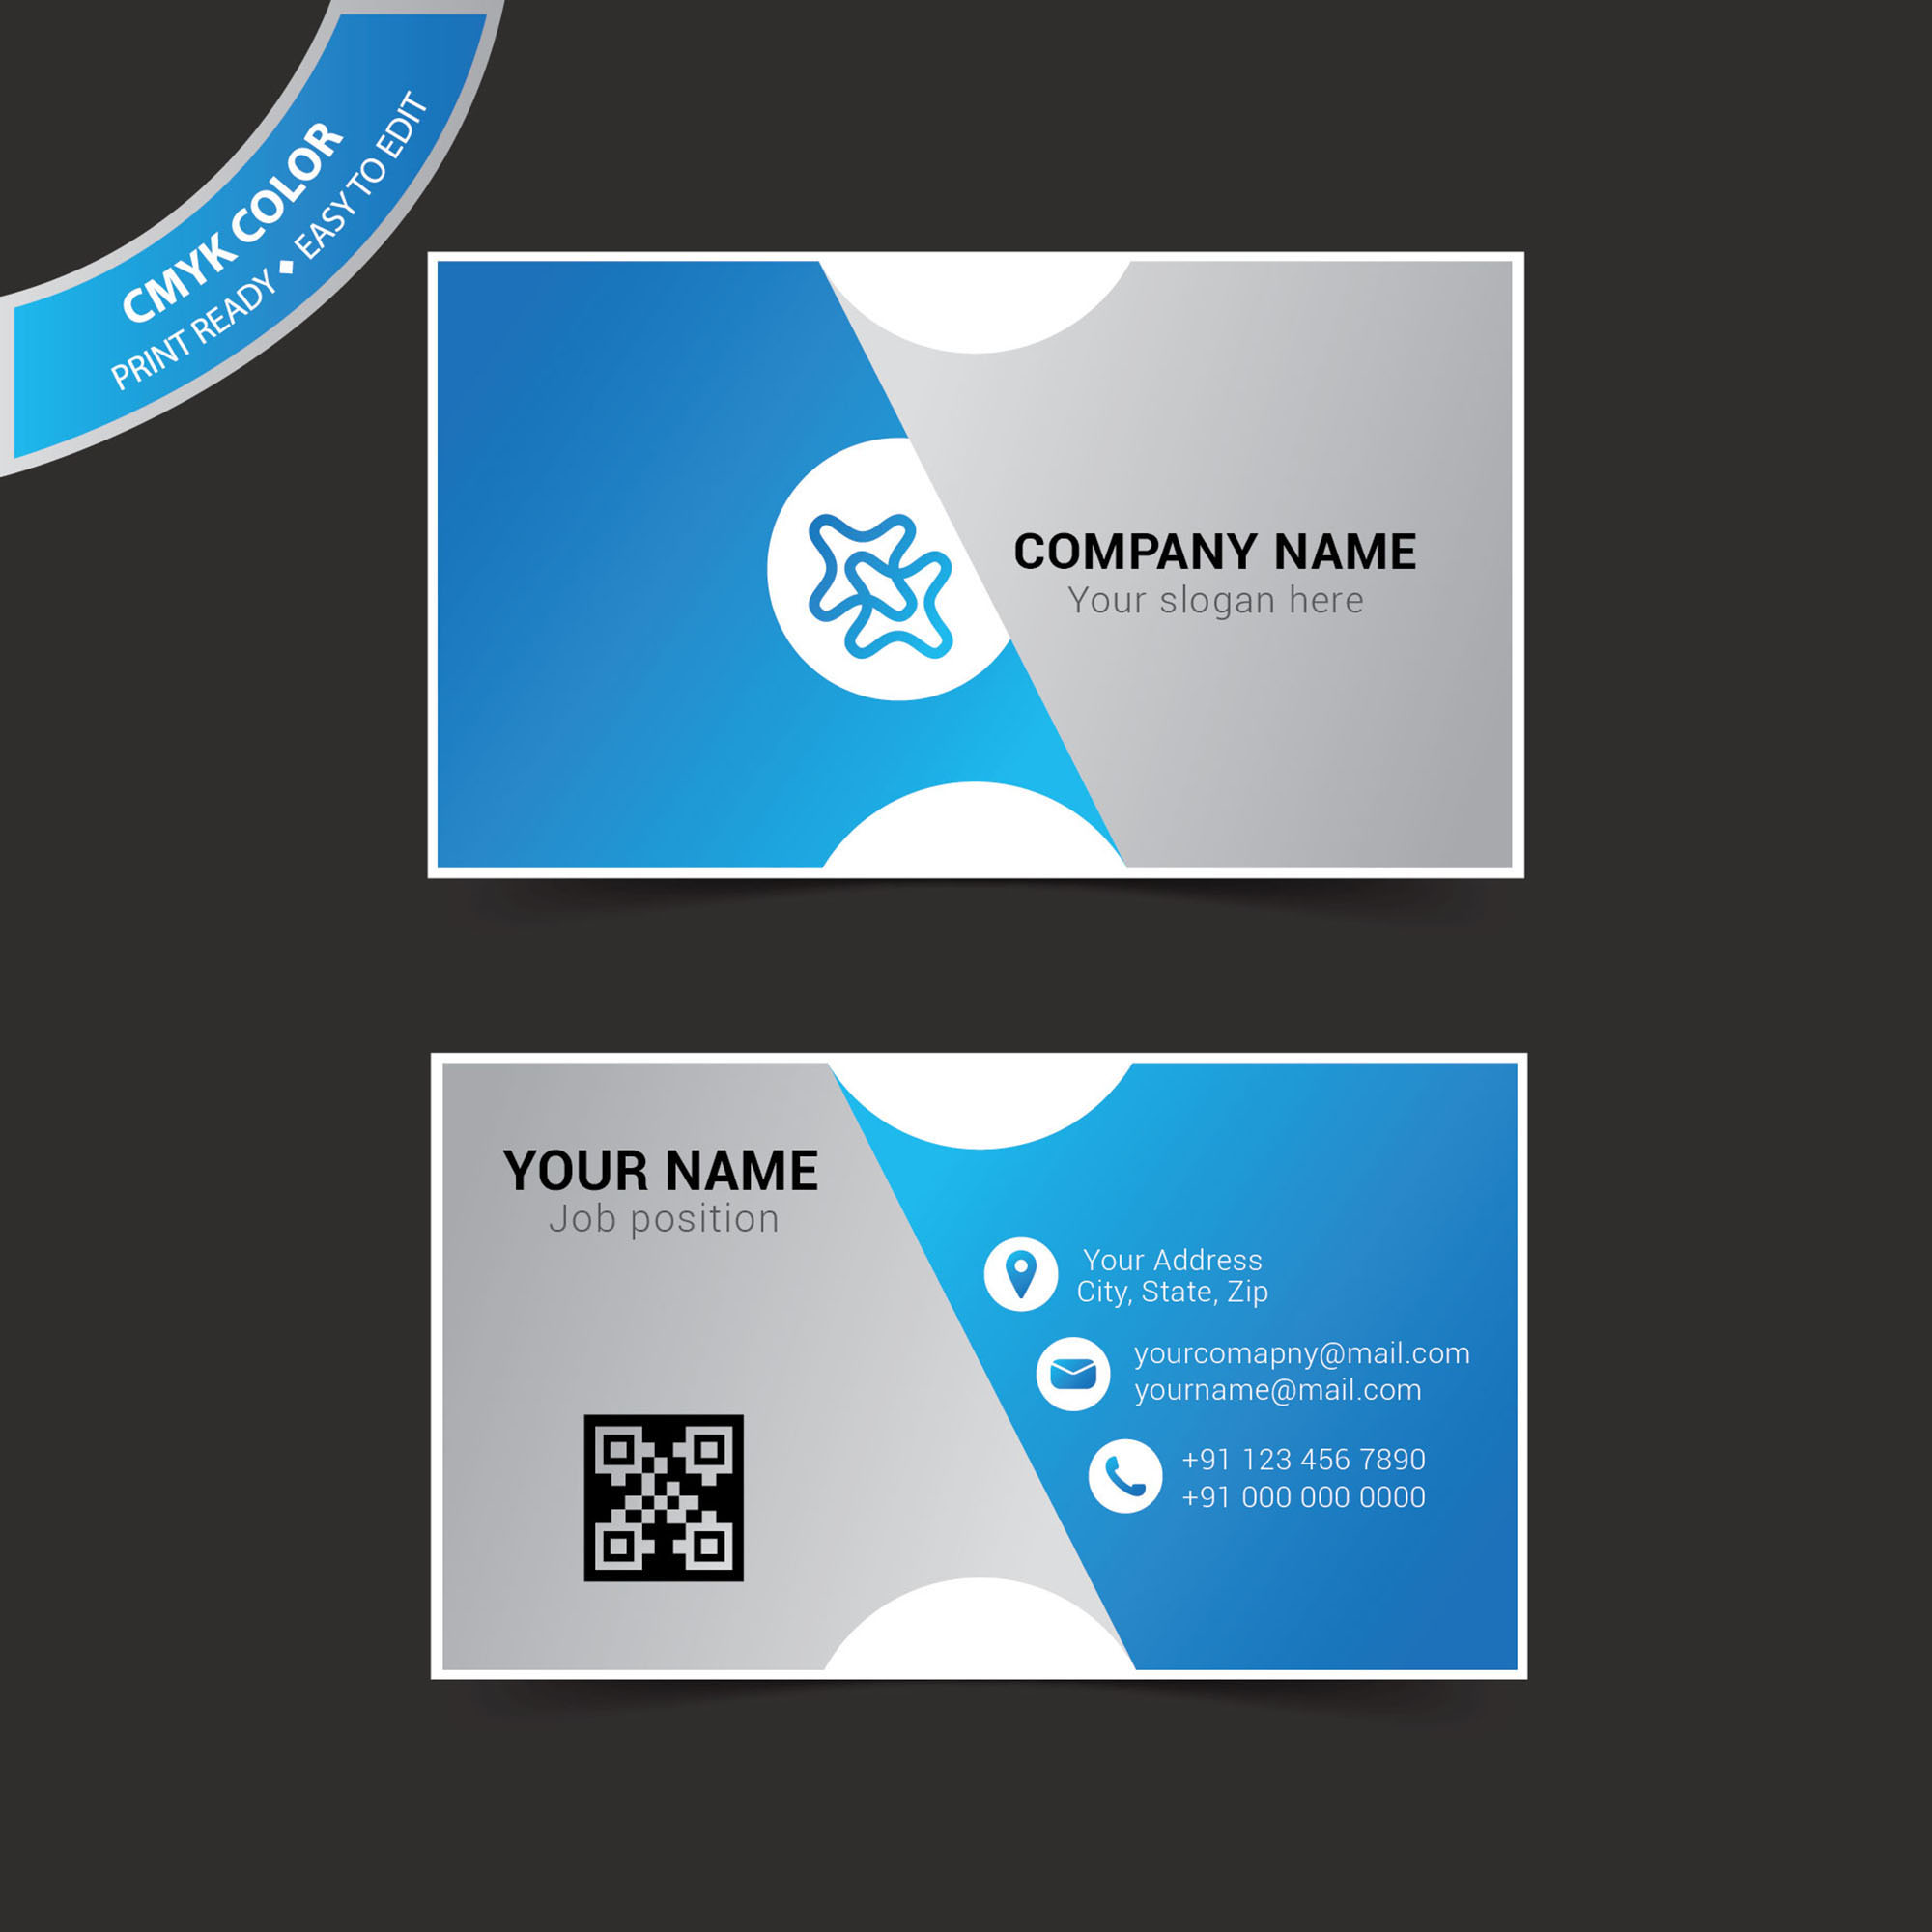 Business card template illustrator free vector wisxi abstract business card design business creative graphic layout template colourmoves